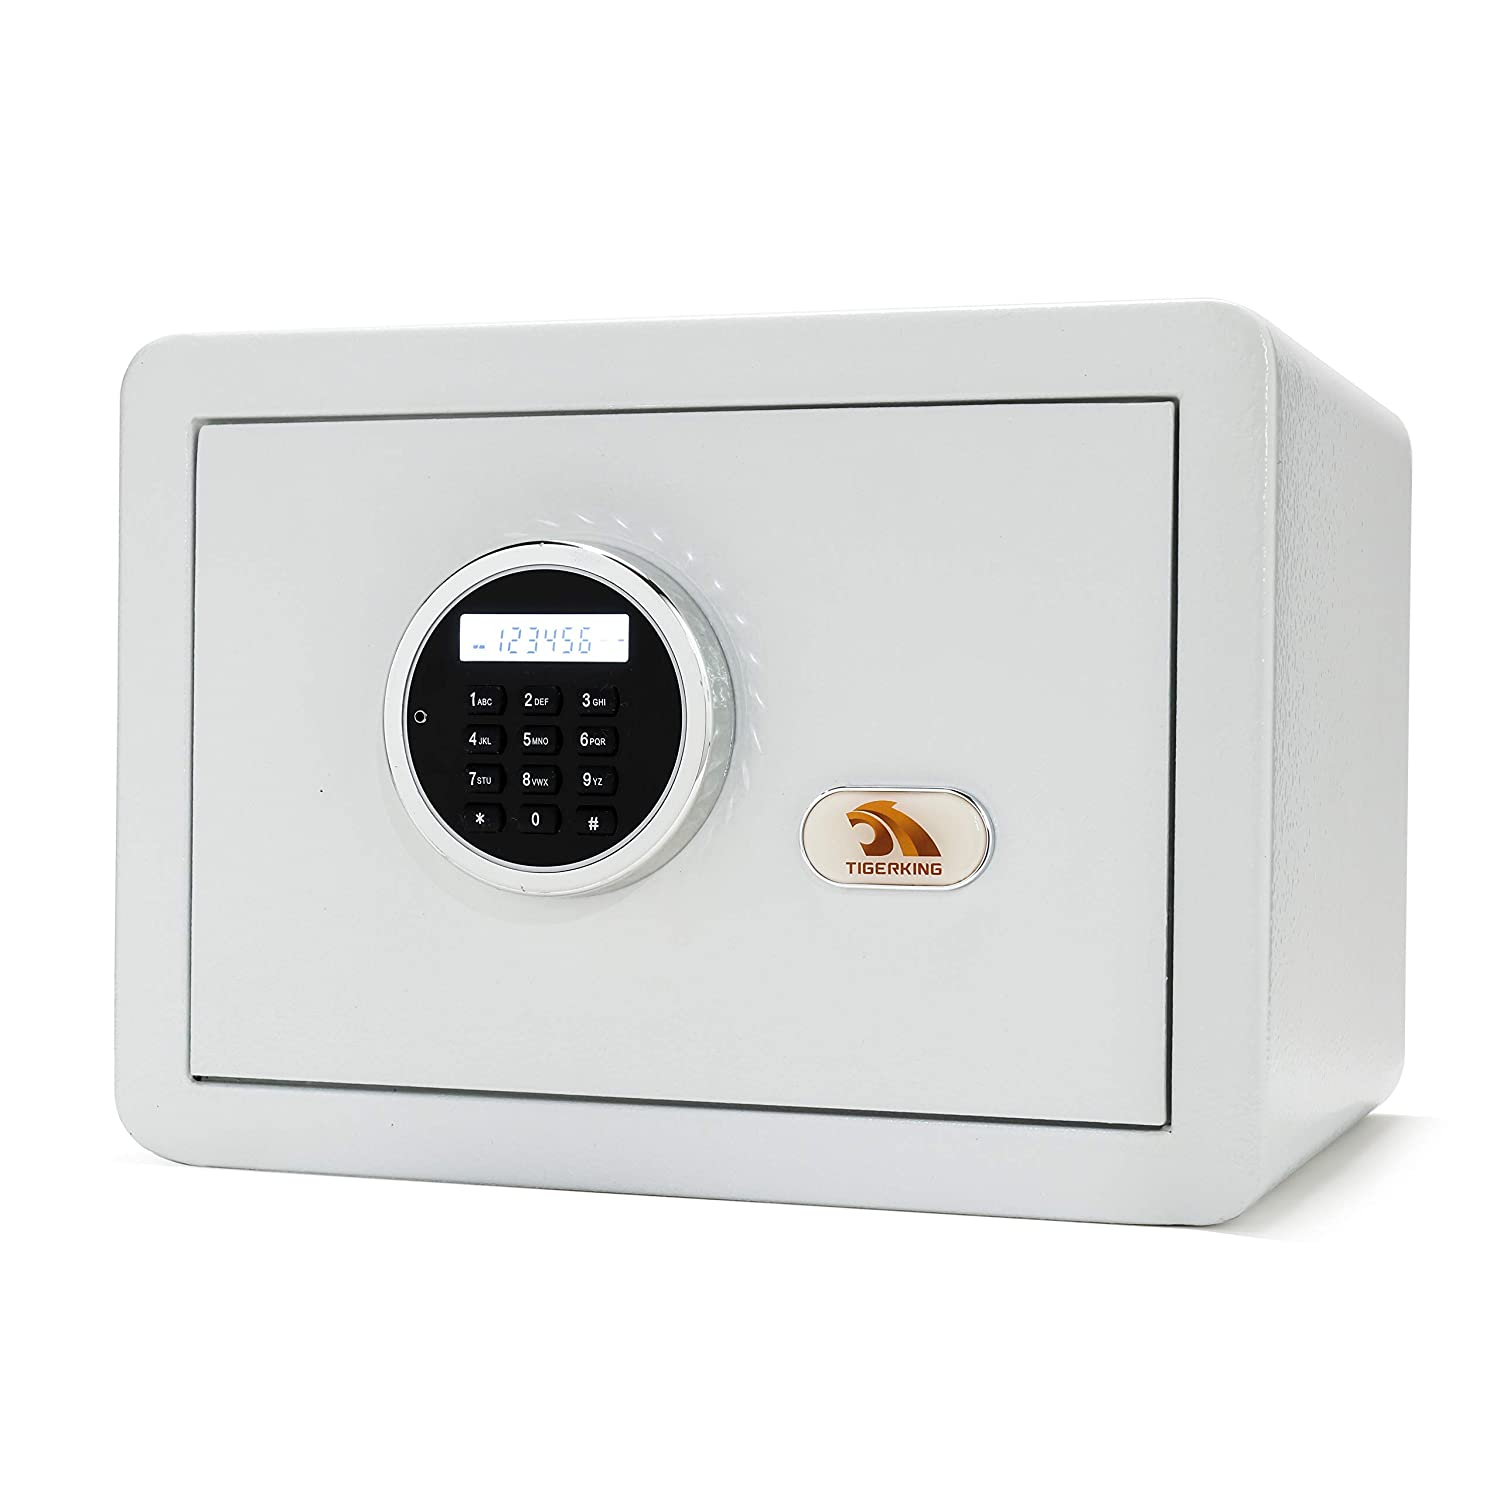 Safe, Safe Box, Security Safe,Digital Safe, Safe and Lock Box,Safety Box for Home,Electronic Steel Safe with Keypad,by TIGERKING